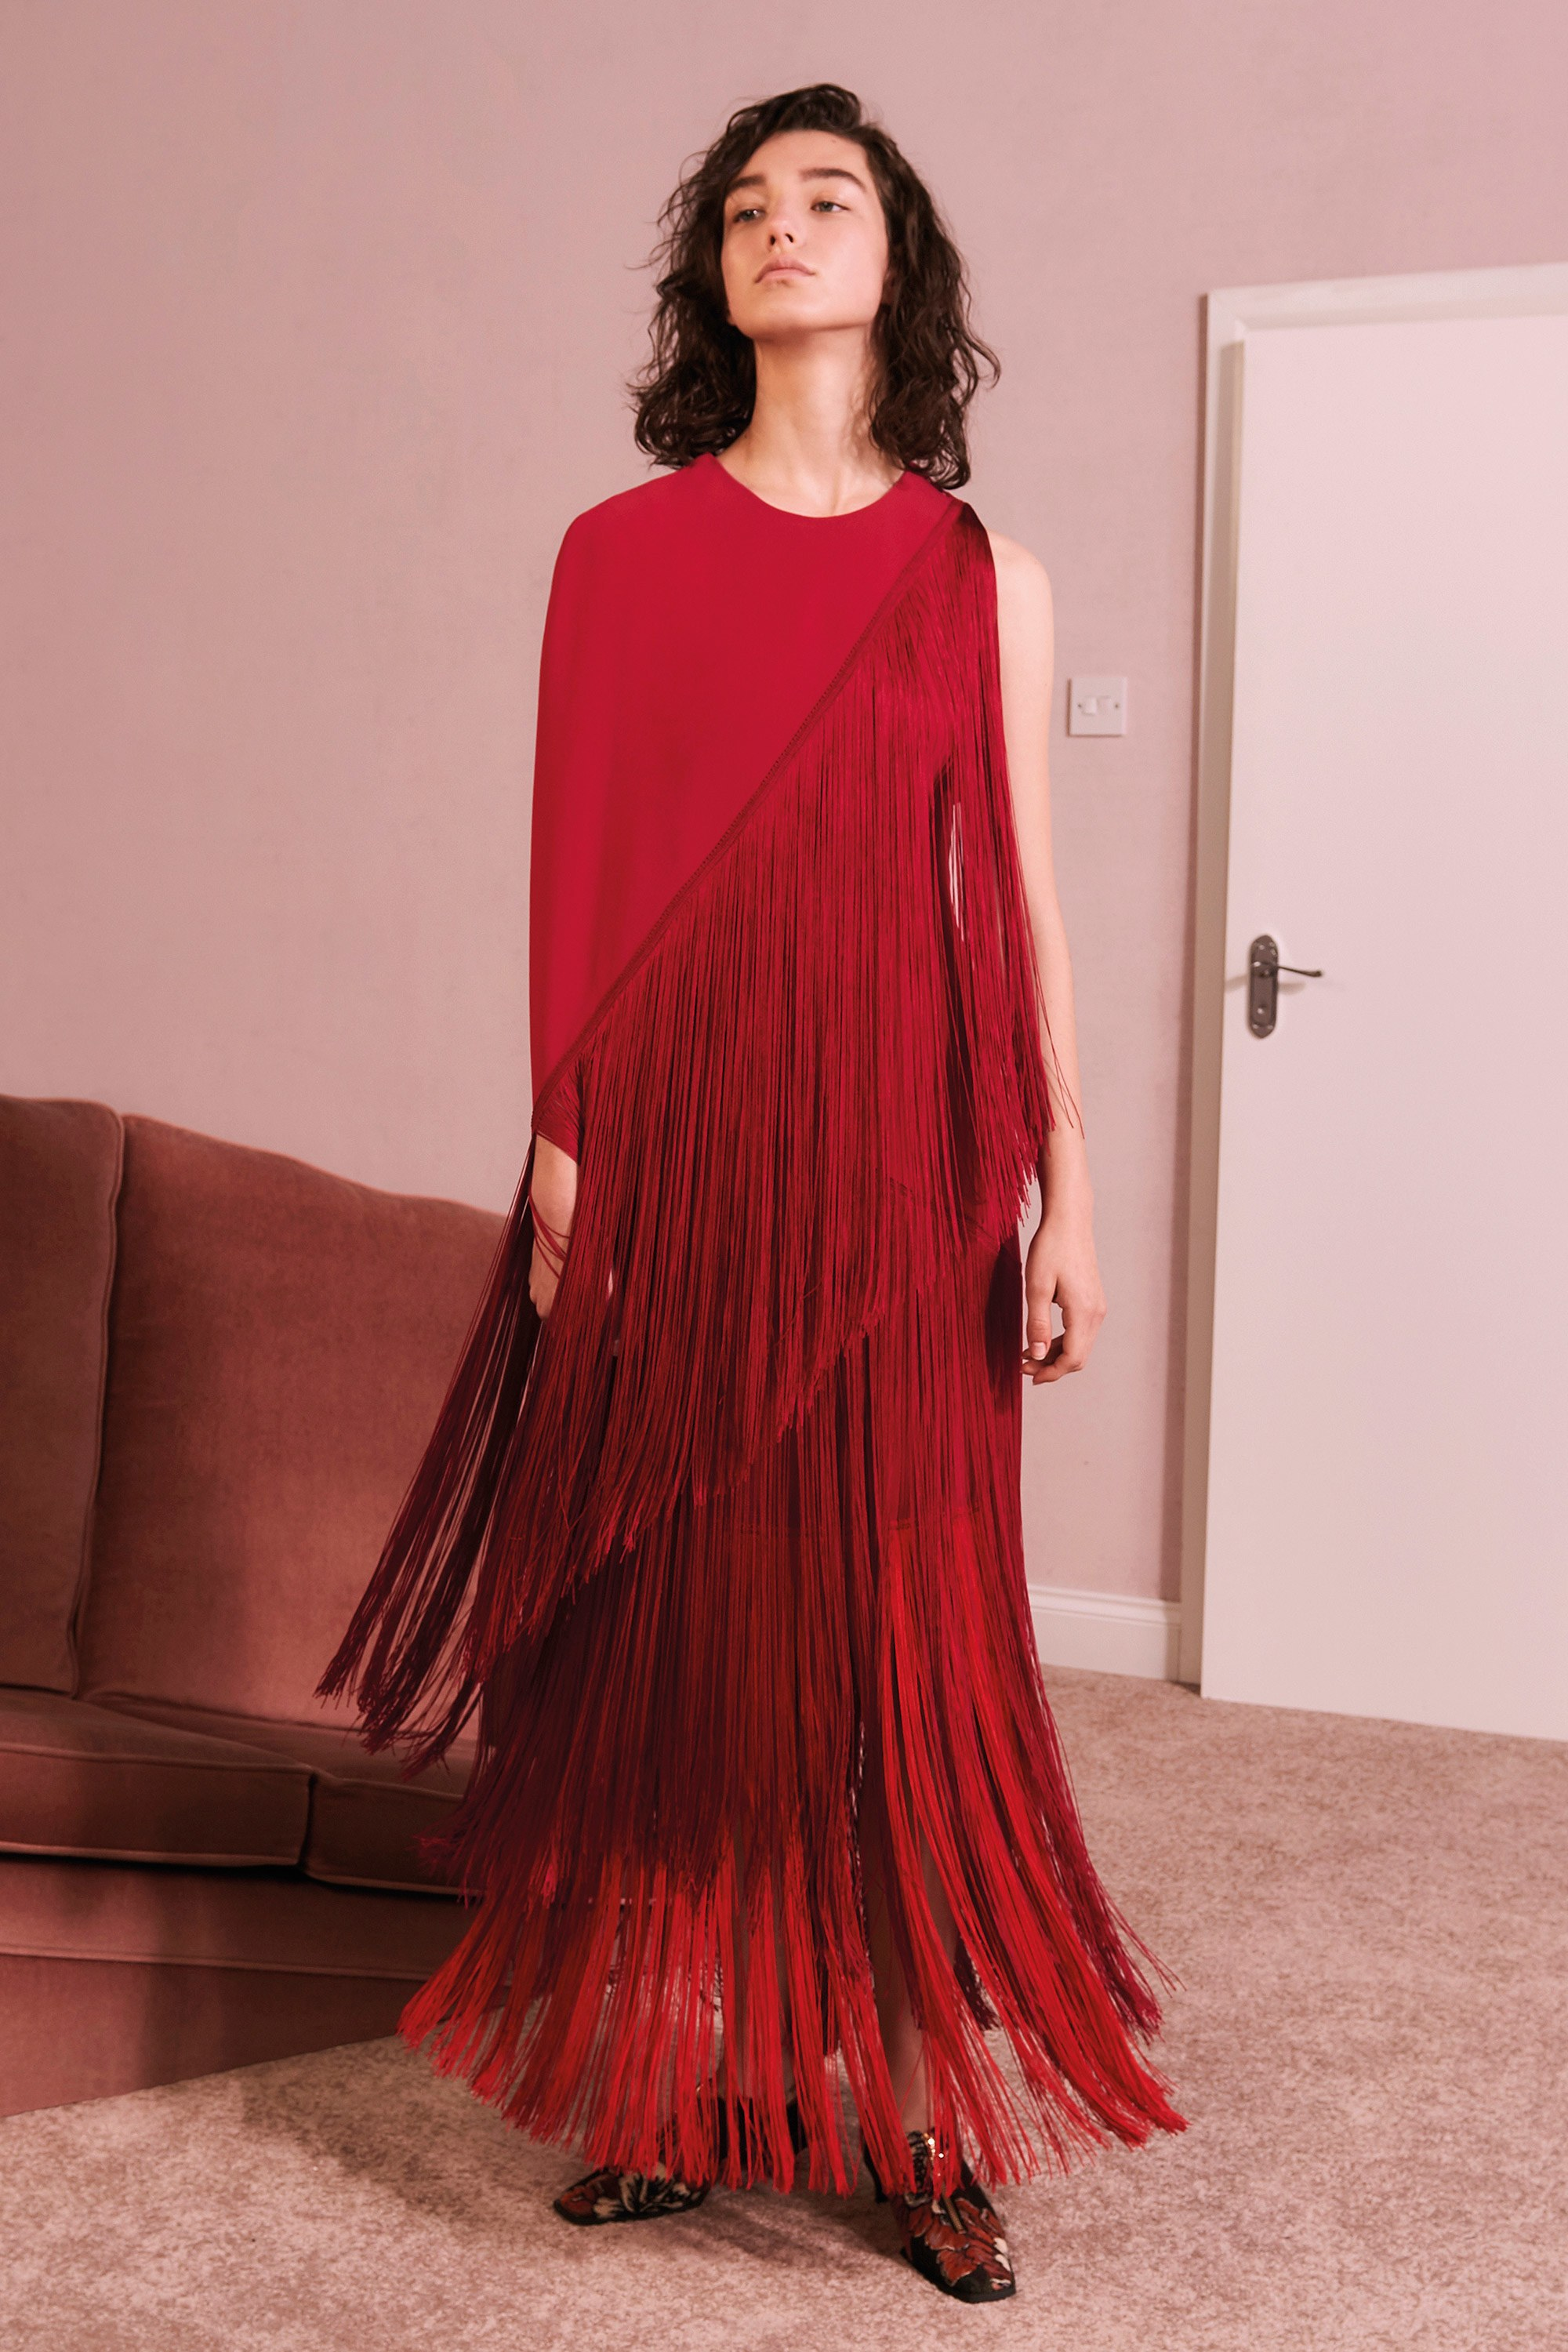 38-stella-mccartney-pre-fall-2017.jpg